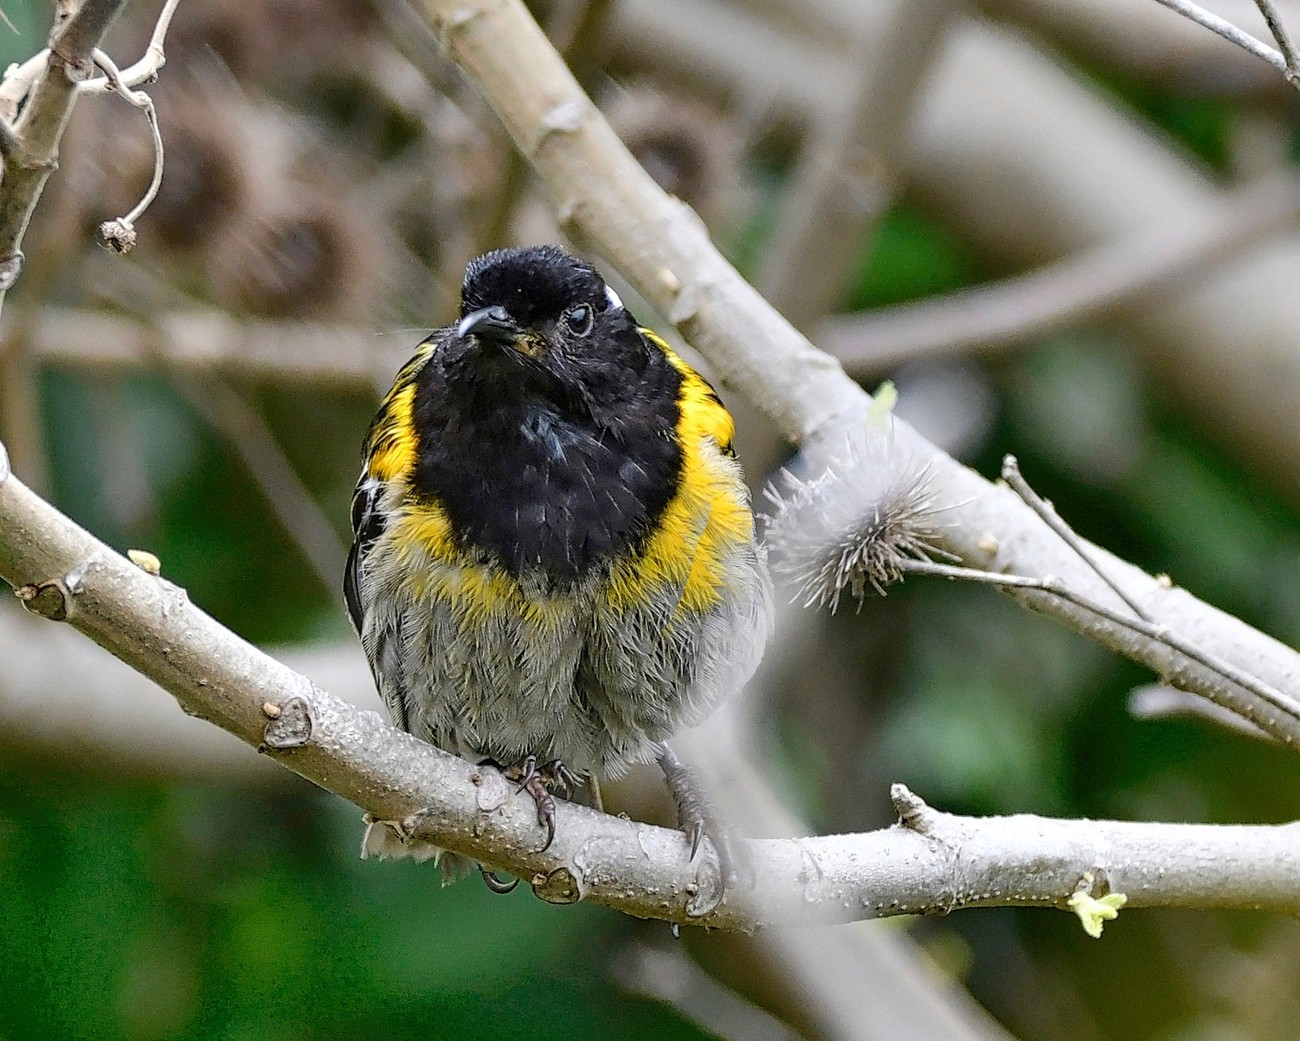 The stitchbird or hihi (Notiomystis cincta) is a rare honeyeater-like bird endemic to the North Island and adjacent offshore islands of New Zealand. Almost extinct, conservation efforts have lead to repopulation of this unique bird to several island sanctuaries in New Zealand. Unlike the photo of the female, this photo was taken in Zealandia, another nature preserve in Wellington, NZ